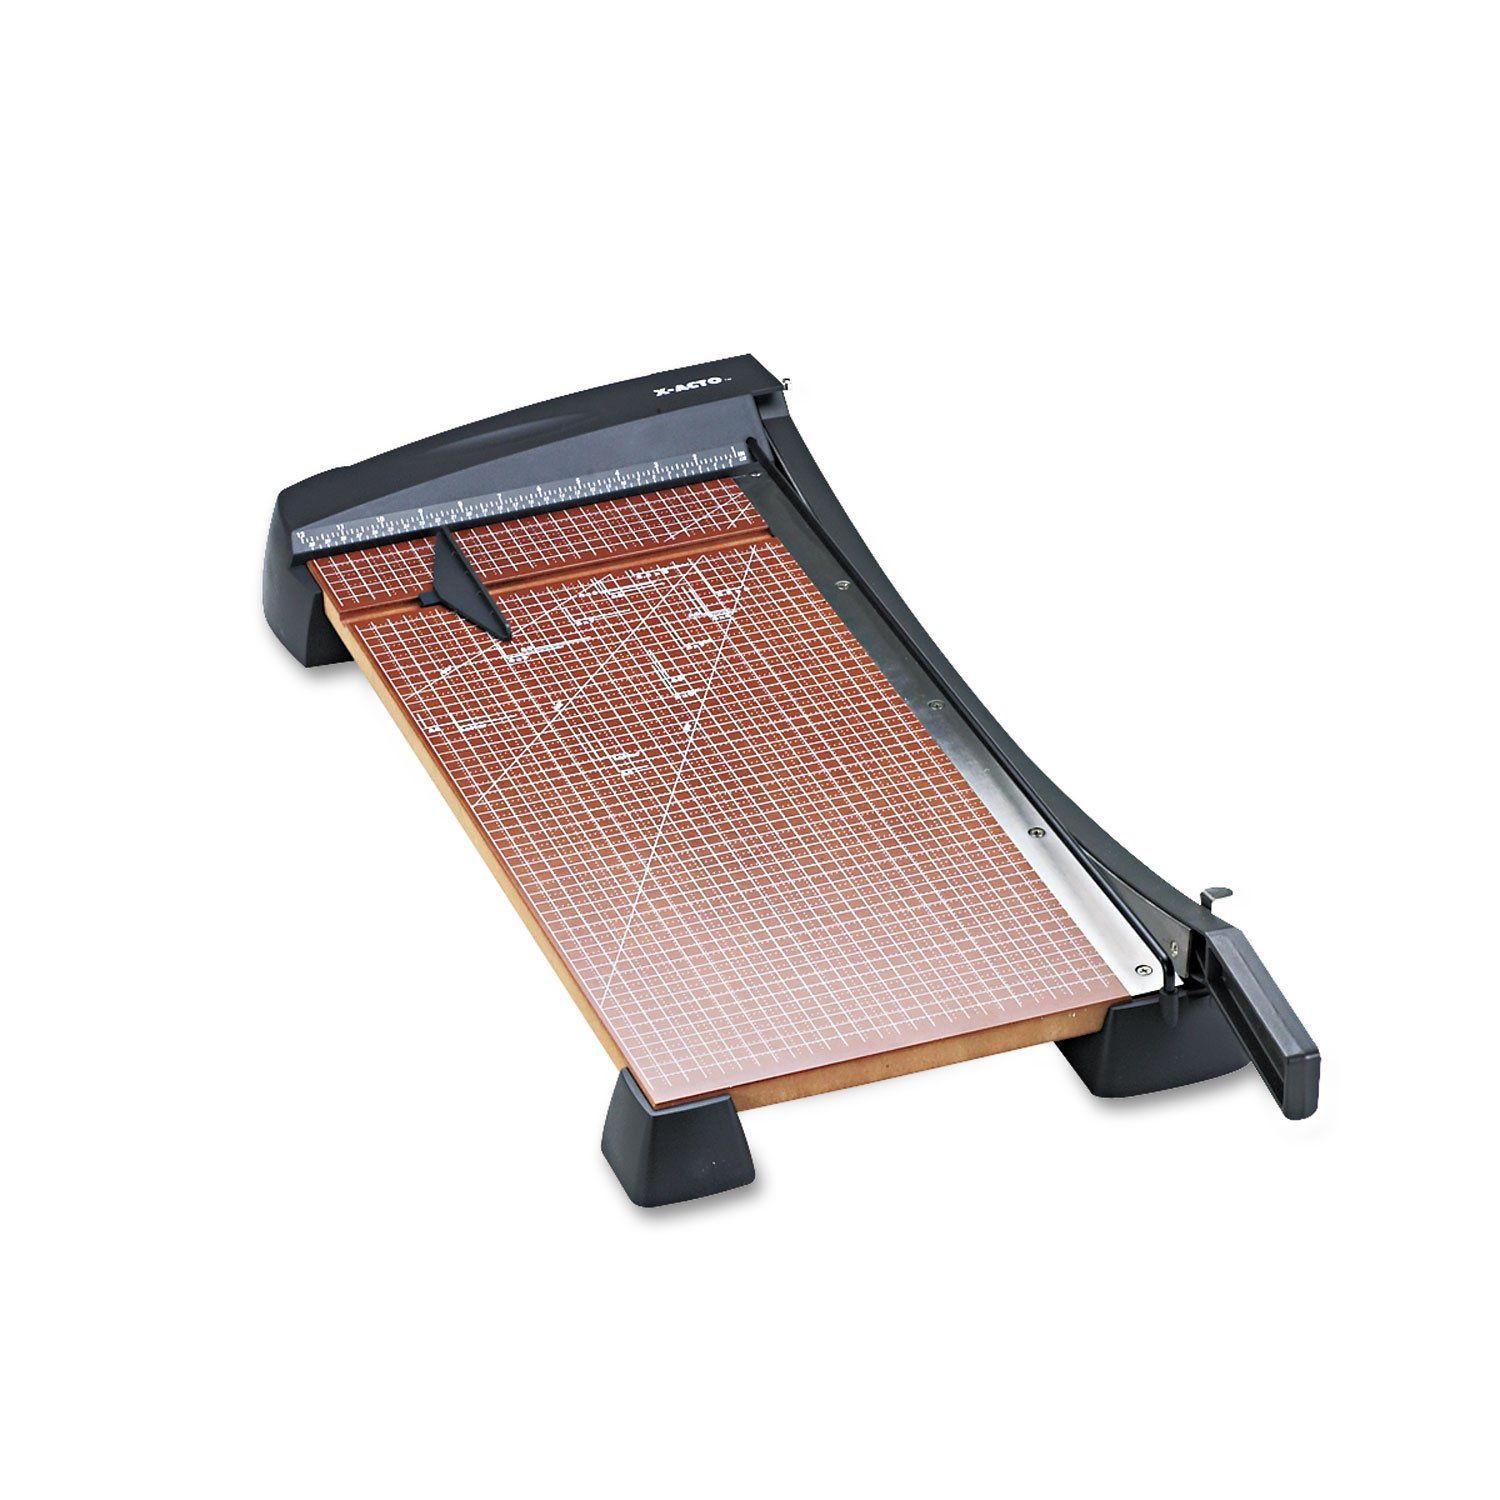 X-ACTO 26364 Heavy-Duty Wood Base Guillotine Trimmer, 15 Sheets, 12 x 24 12 x 24 ELMER' S PRODUCTS INC.